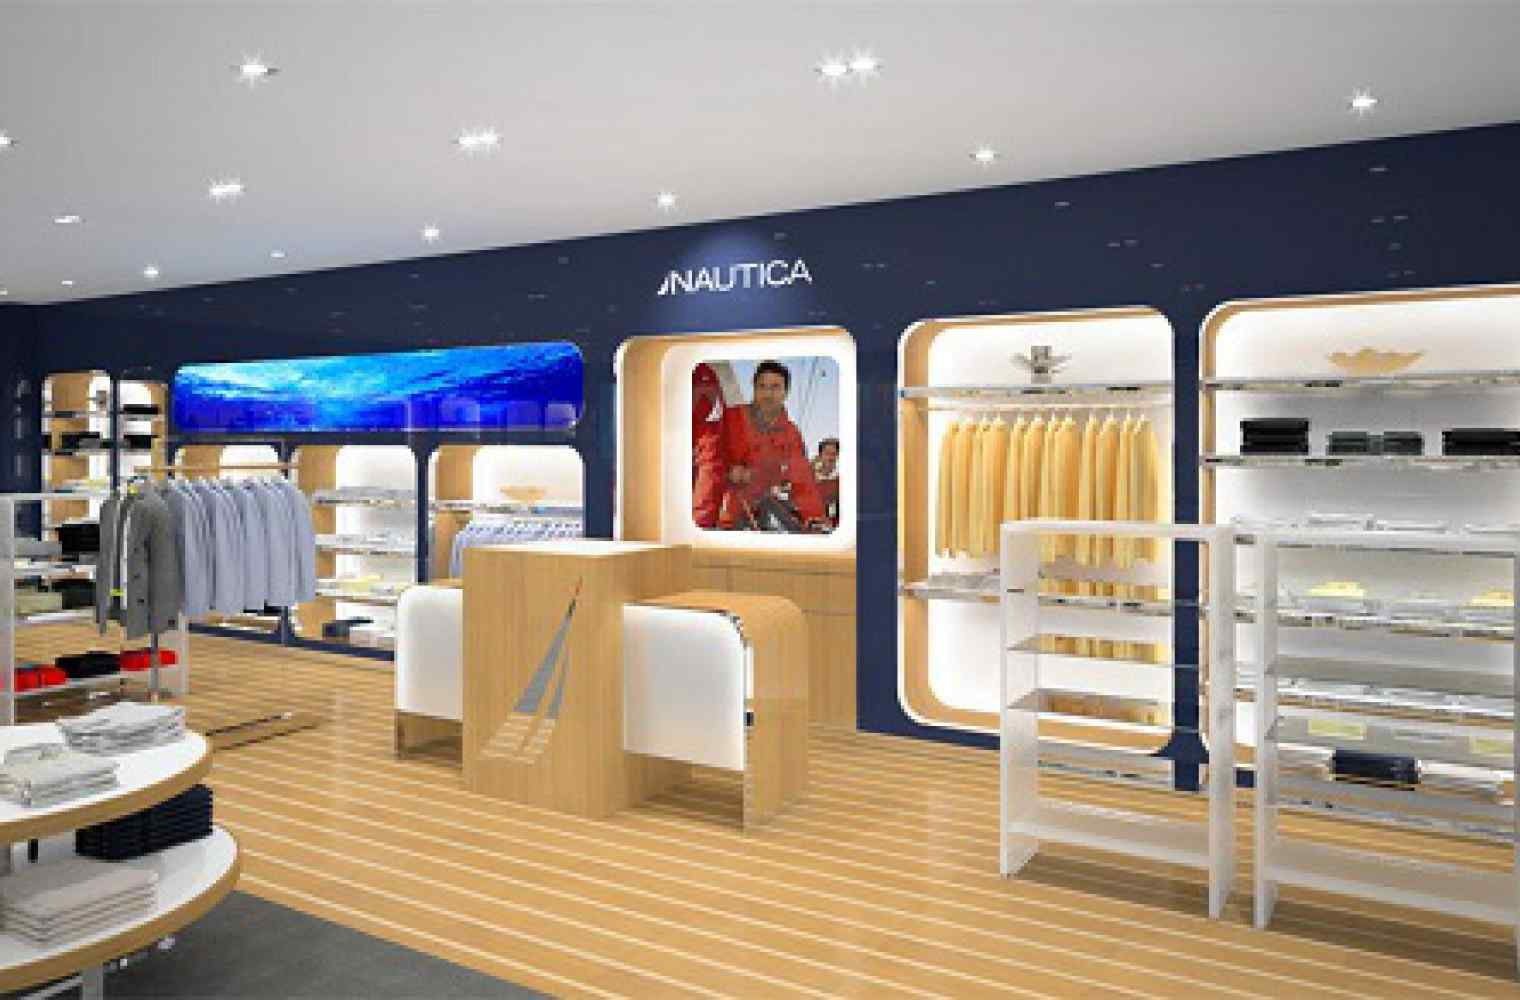 Flagship shop Nautica will be opened in Shopping and entertainment center Respublika